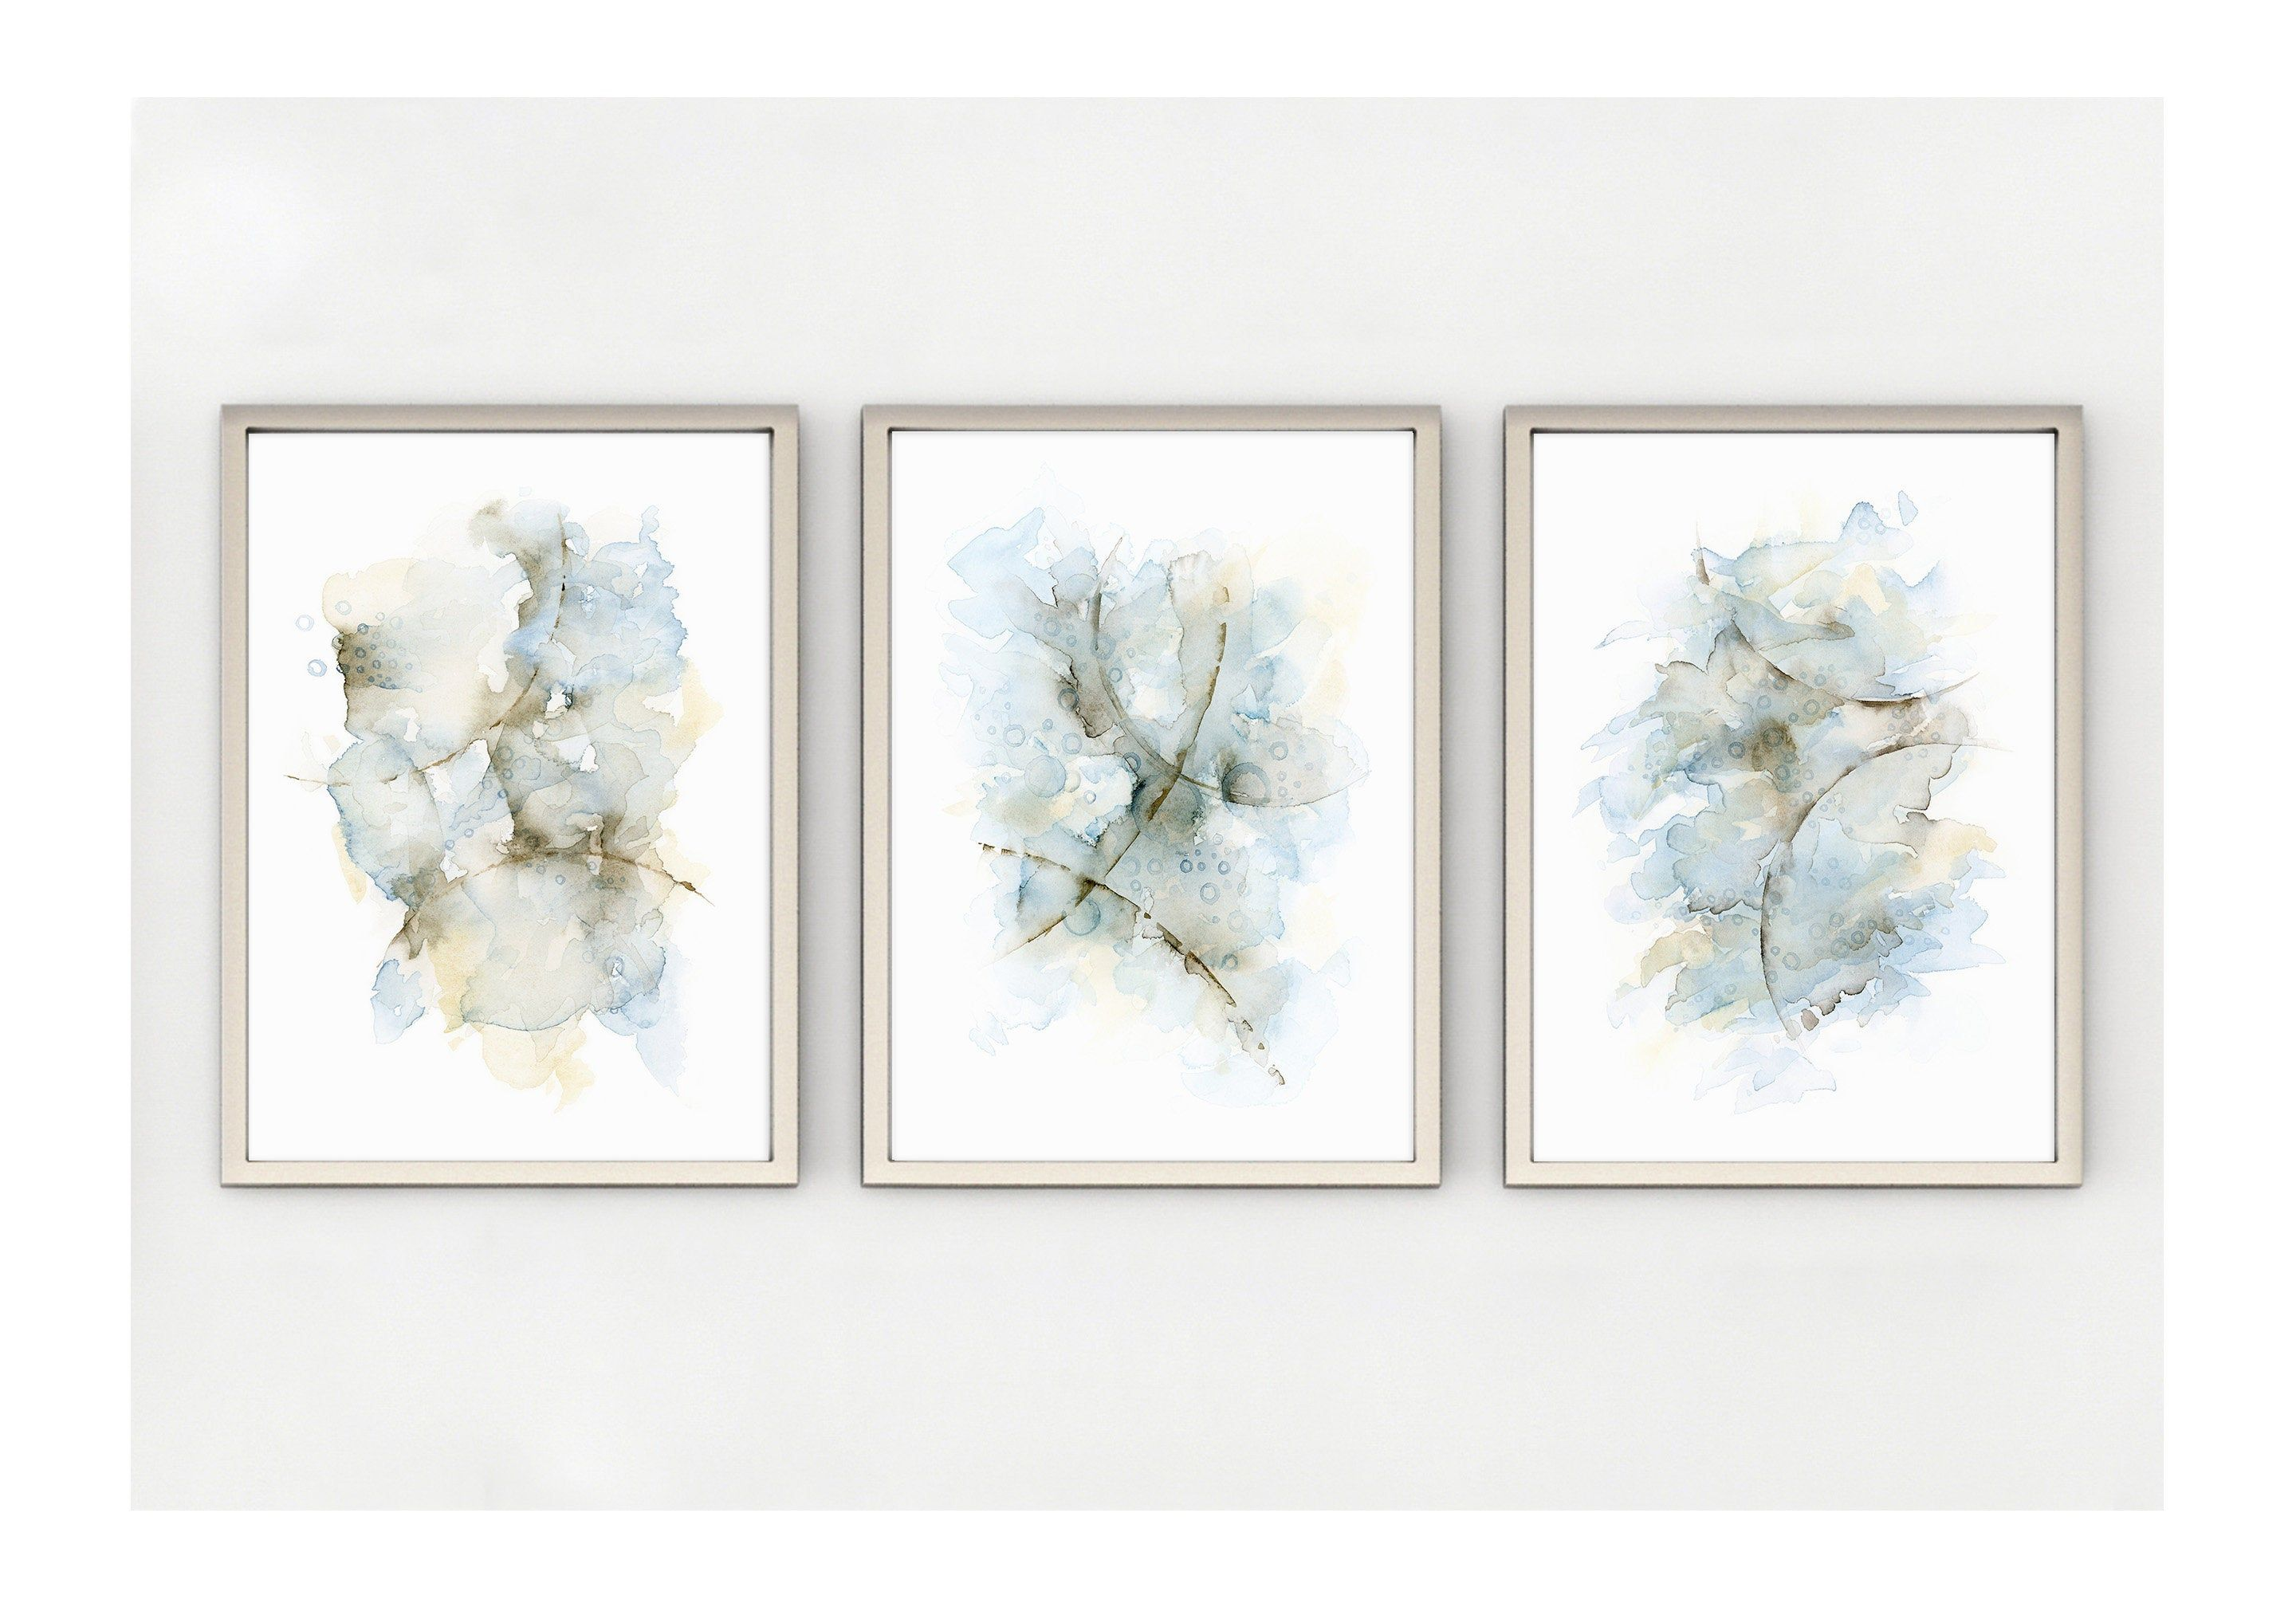 Set Of 3 Prints Abstract Painting In Blue Grey Brown Cream 5x7 Inch Fine Art Prints Modern Minimalist Artwork